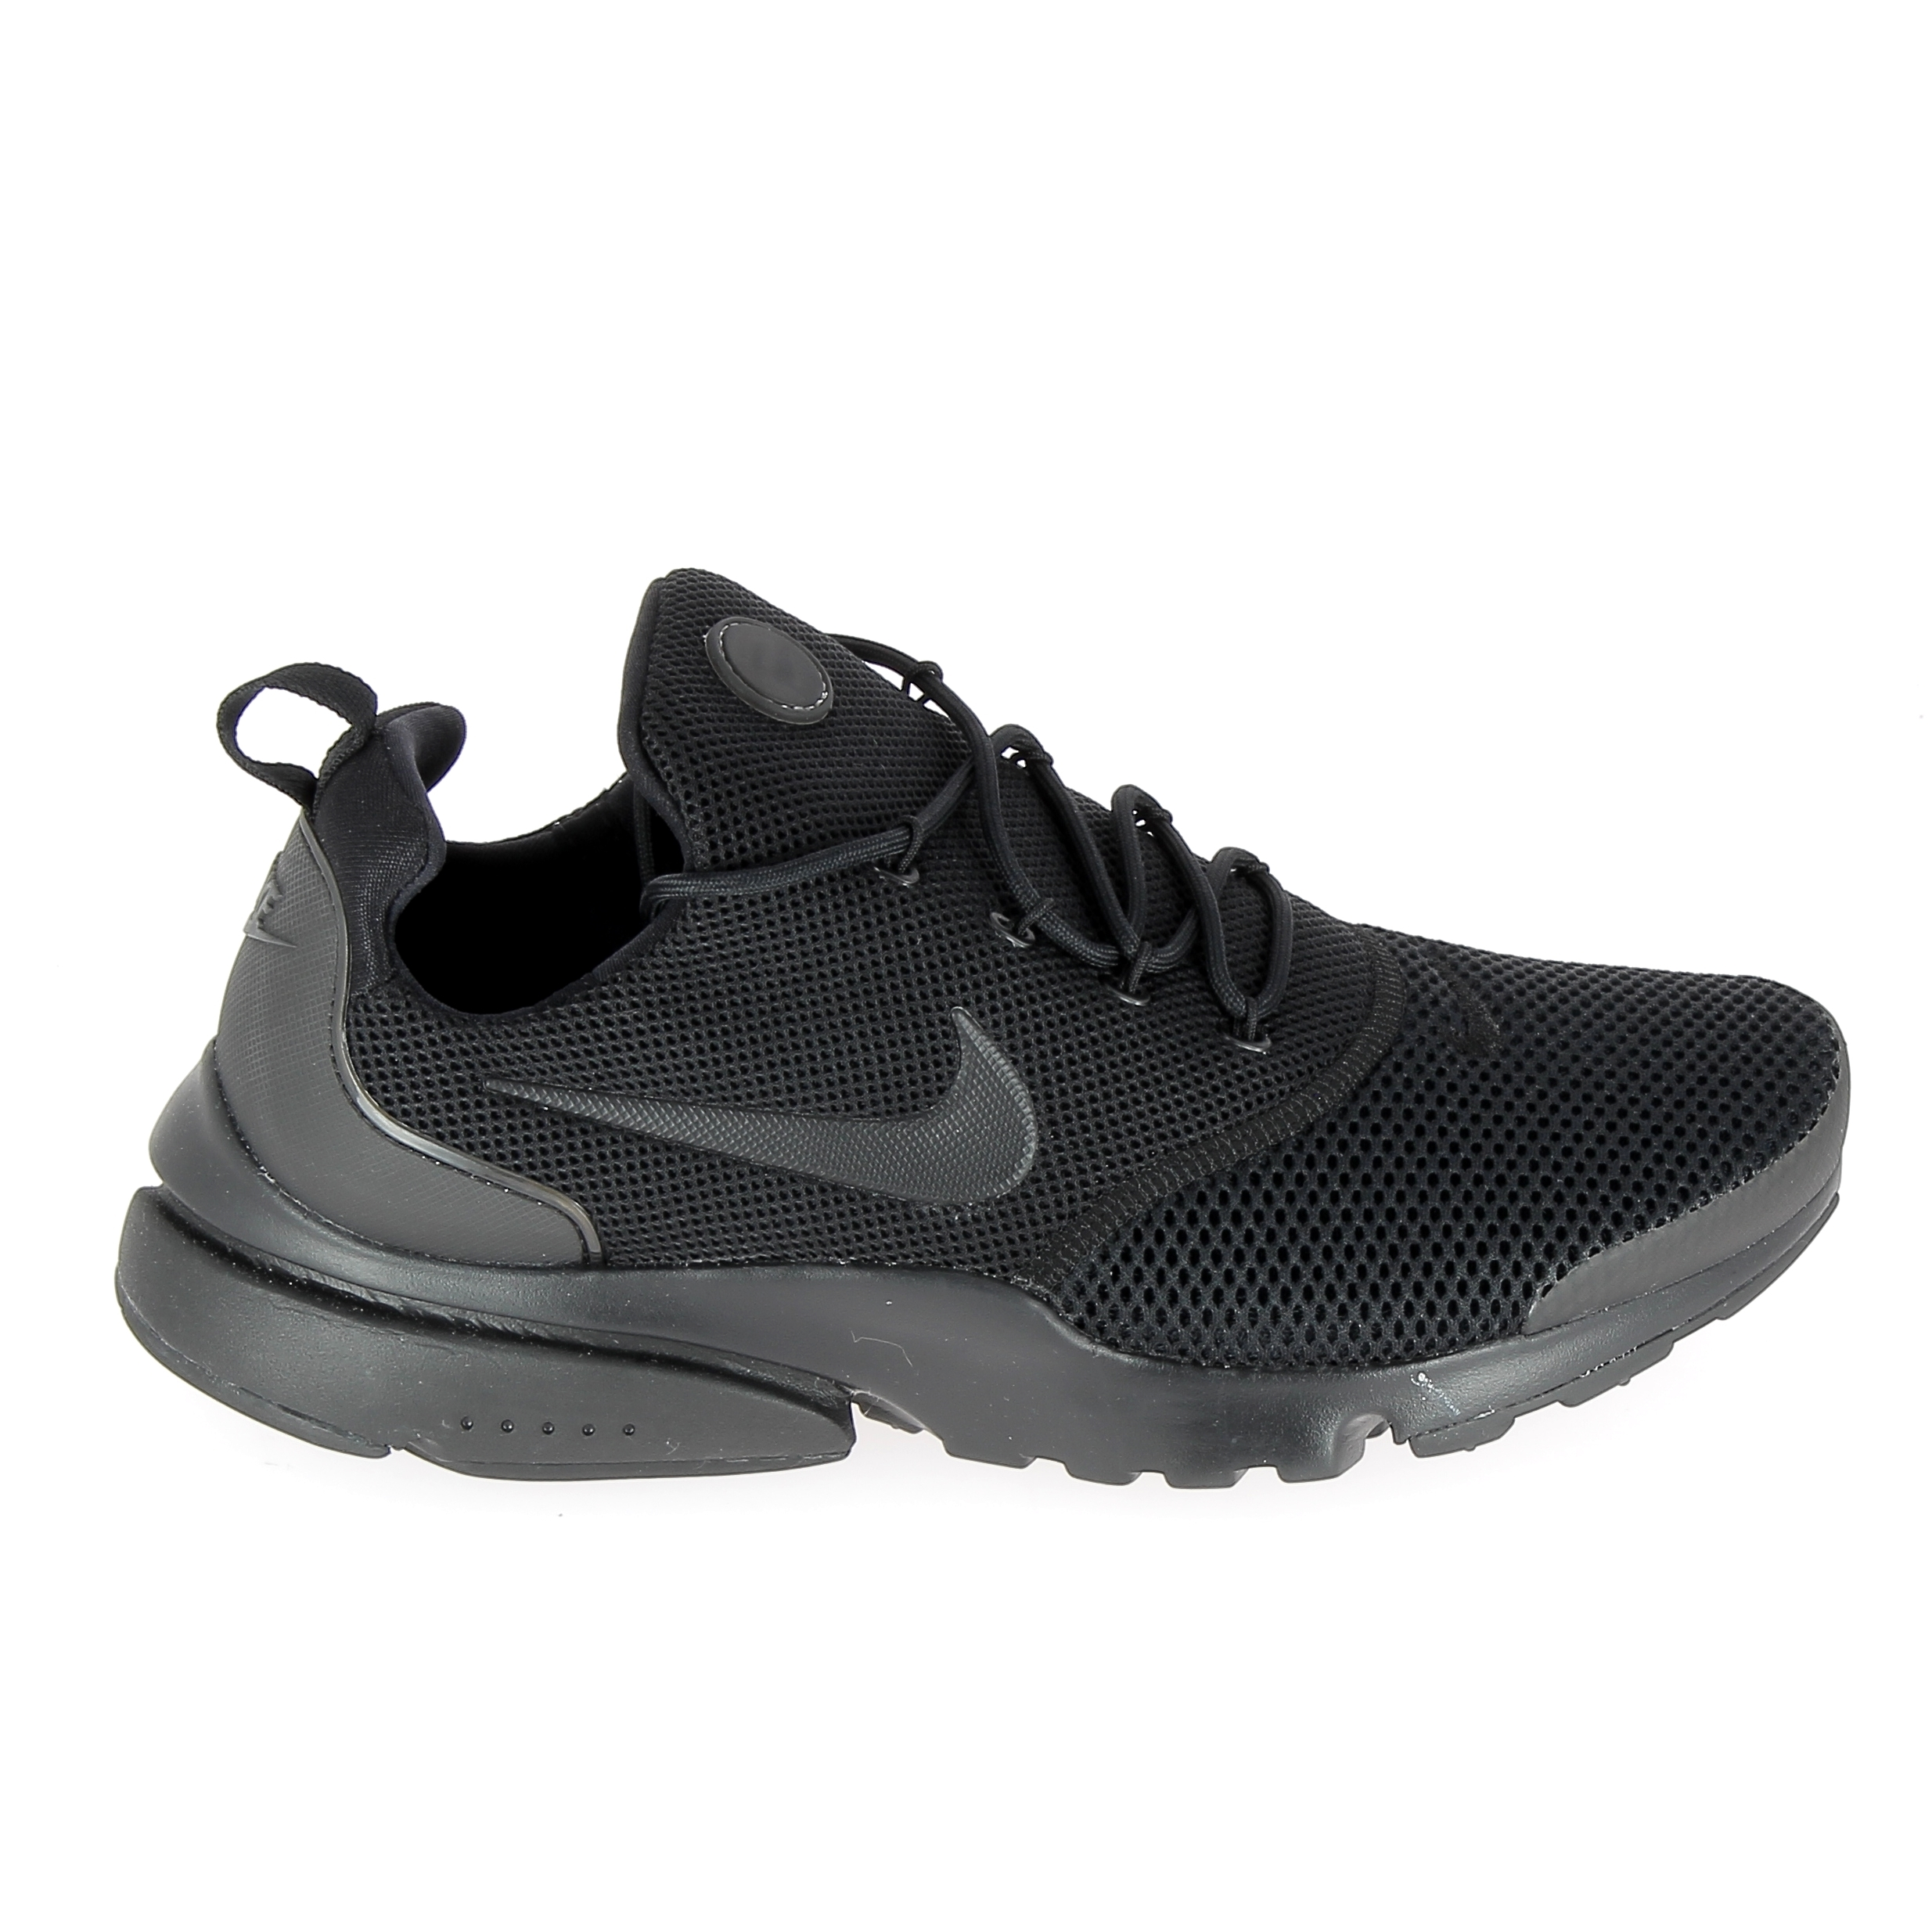 taille 40 d6382 851c8 Basket mode, SneakerBasket mode - Sneakers NIKE Presto Fly Noir